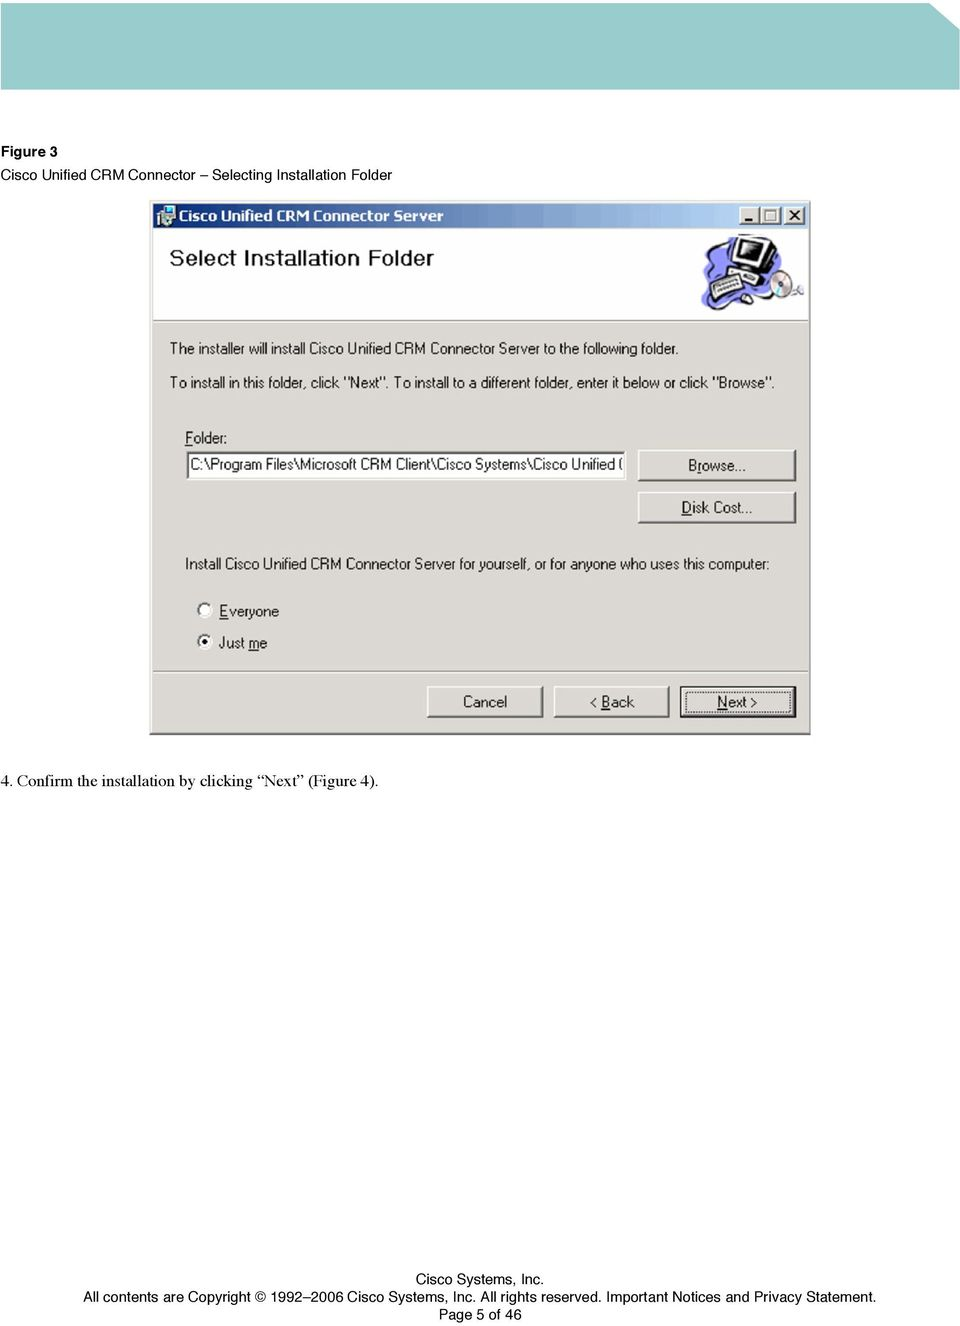 Confirm the installation by clicking Next (Figure 4).